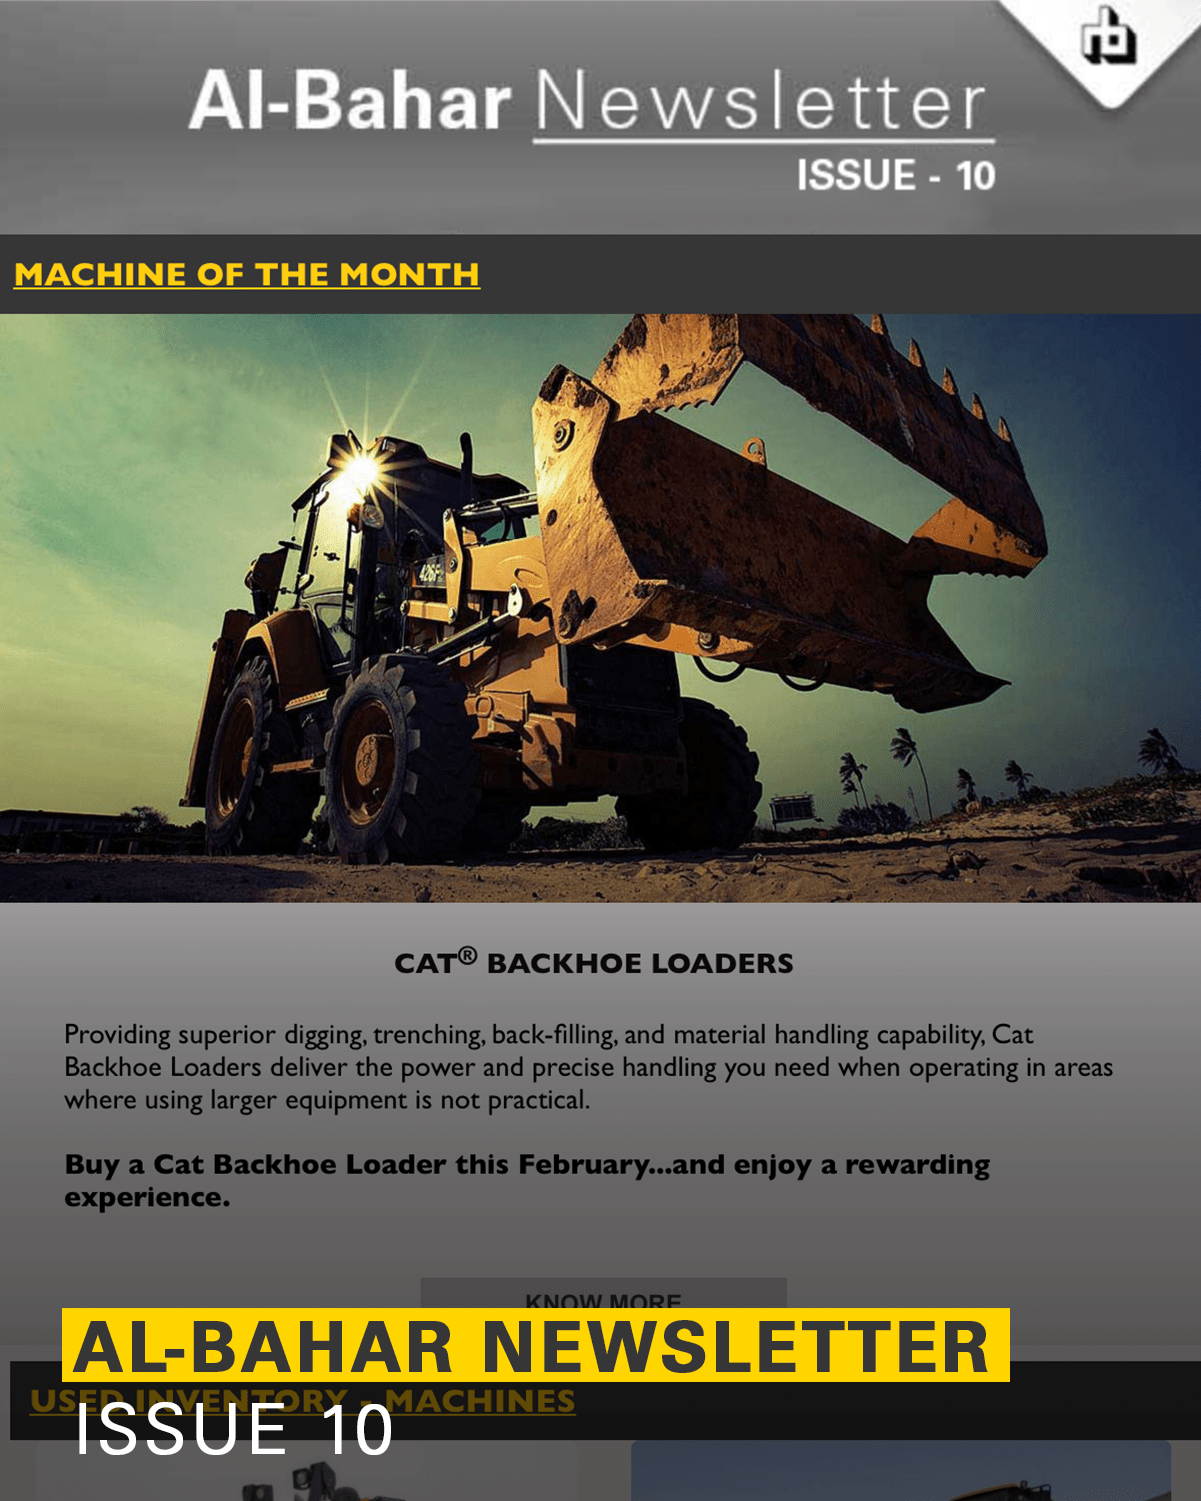 al-bahar-2018-newsletter-issue-10